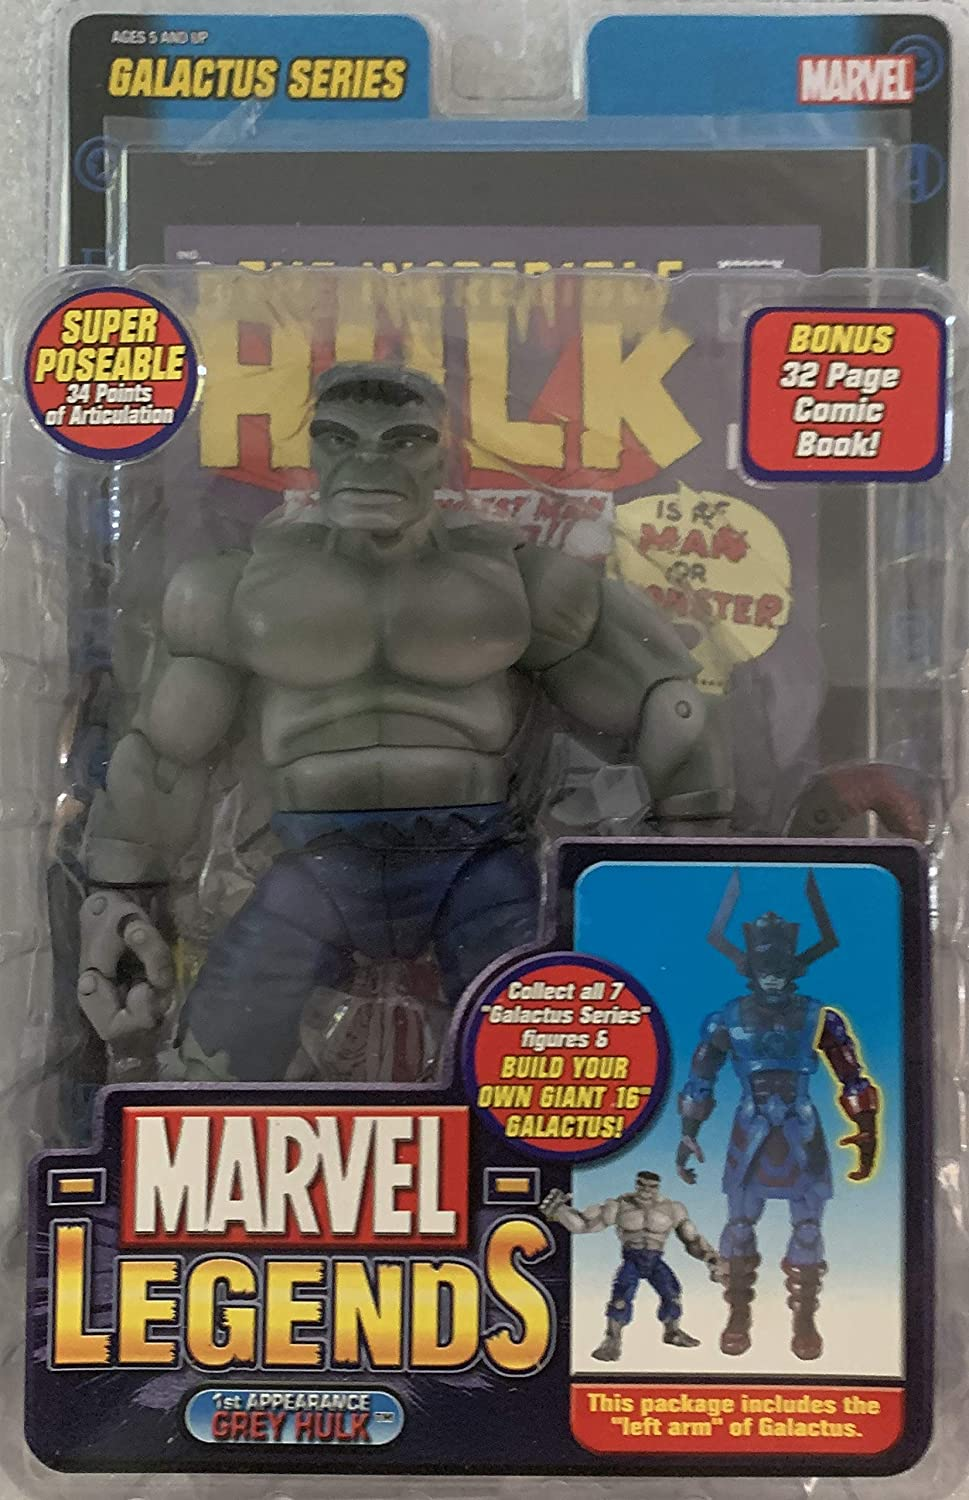 Marvel Legends Series 9 (Galactus Series) - 1st Appearance Gray Hulk